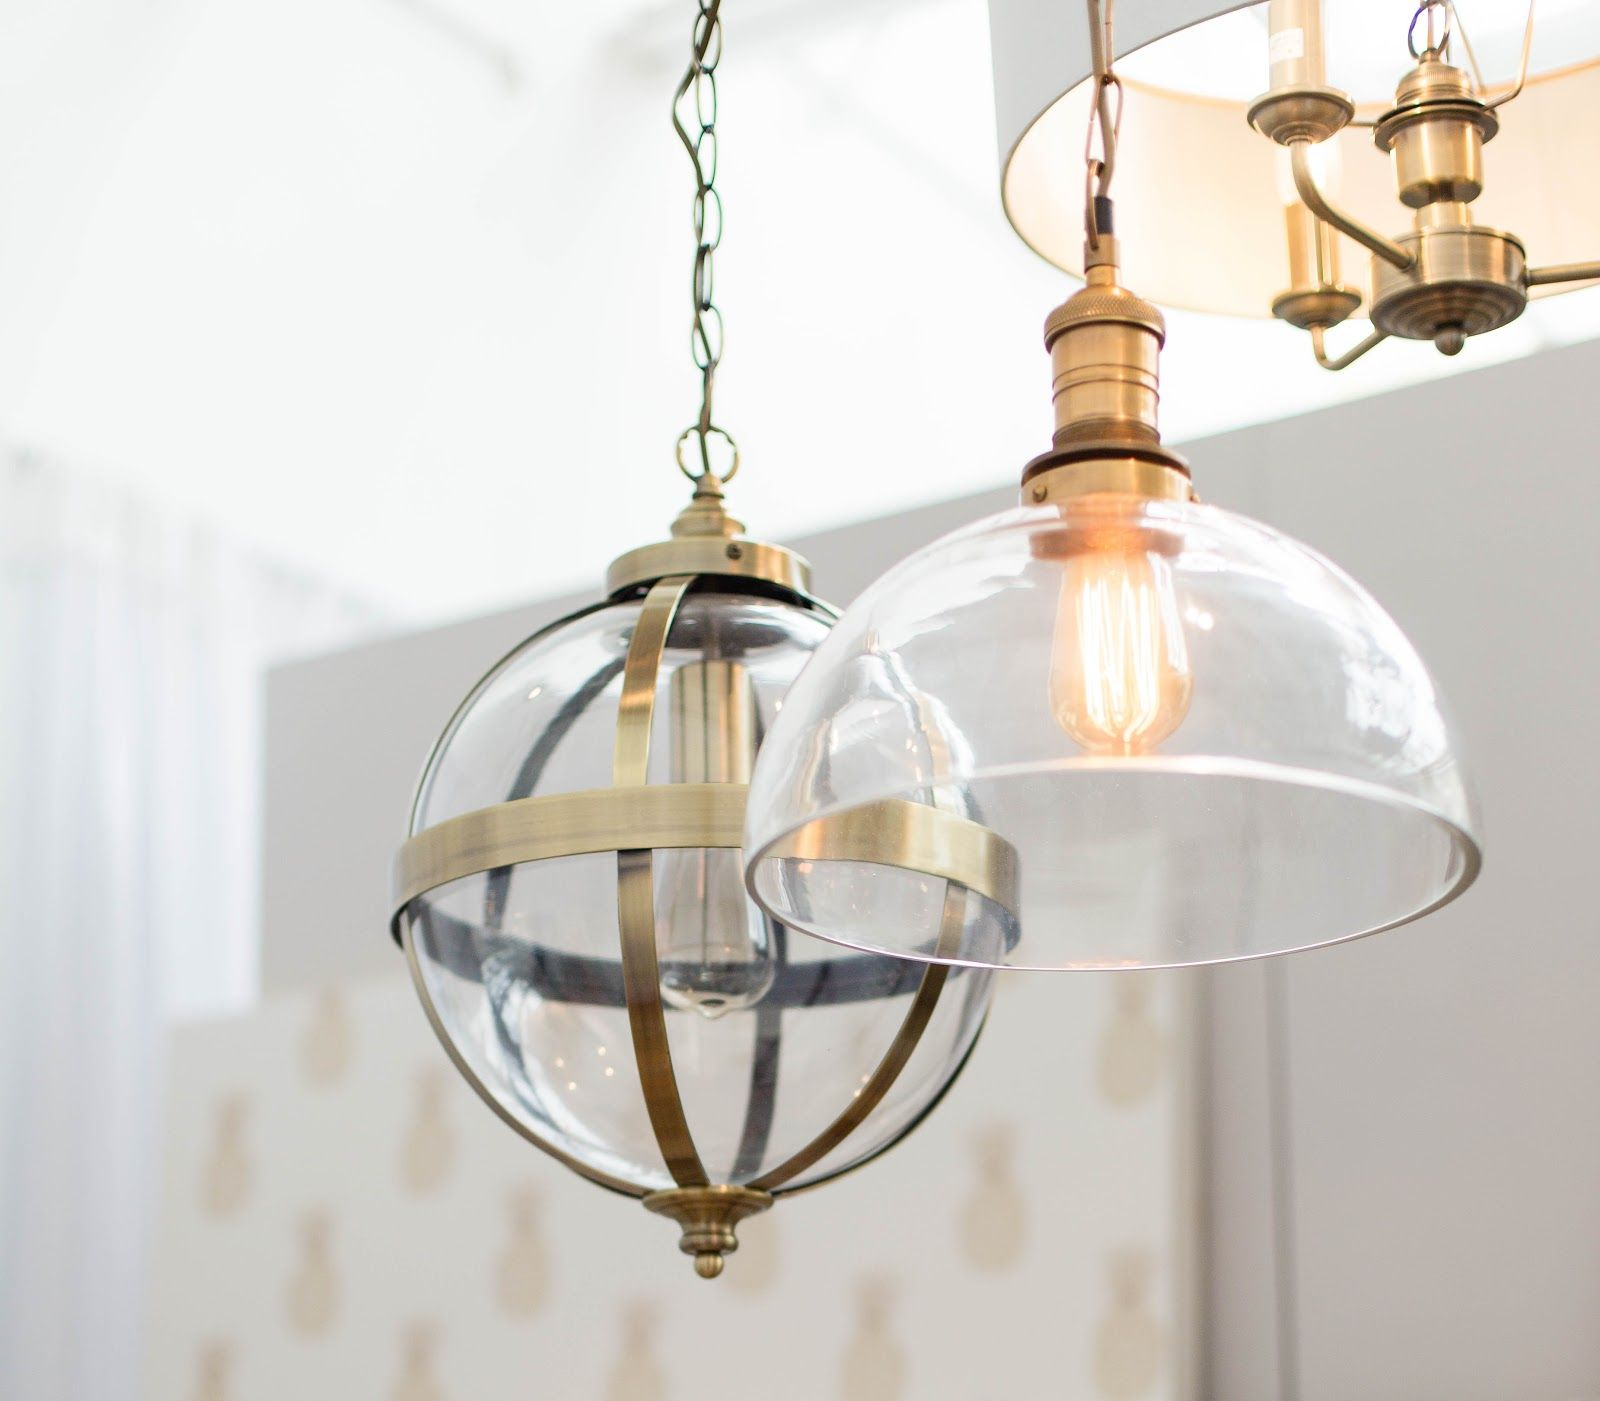 LAURA ASHLEY PRESS SHOW AW16 | Laura ashley, Industrial lighting and ...